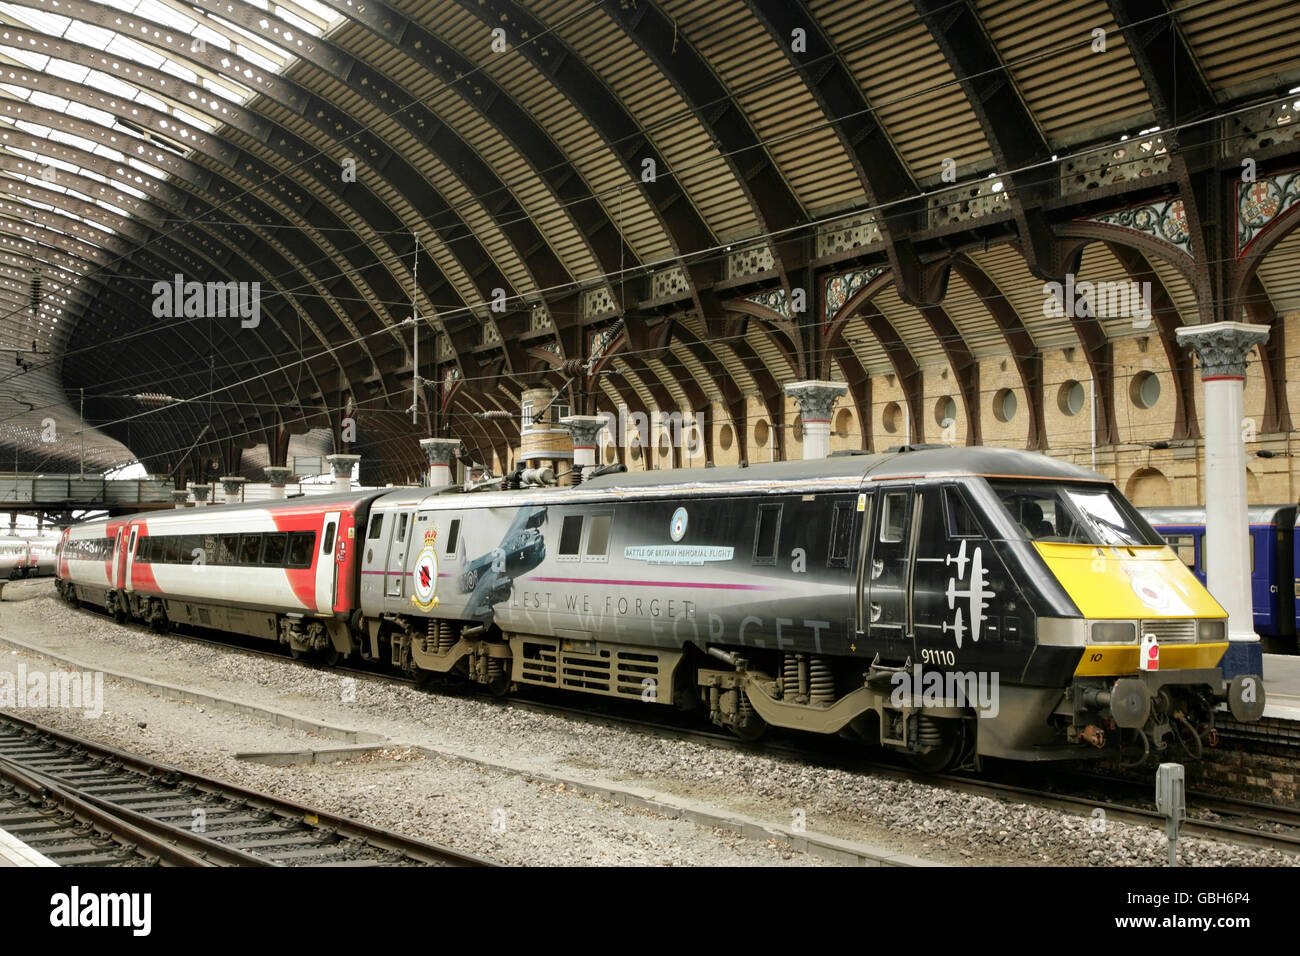 Class 91 loco 91110 'Battle of Britain Memorial Flight' in commemorative livery at York station, UK with - Stock Image